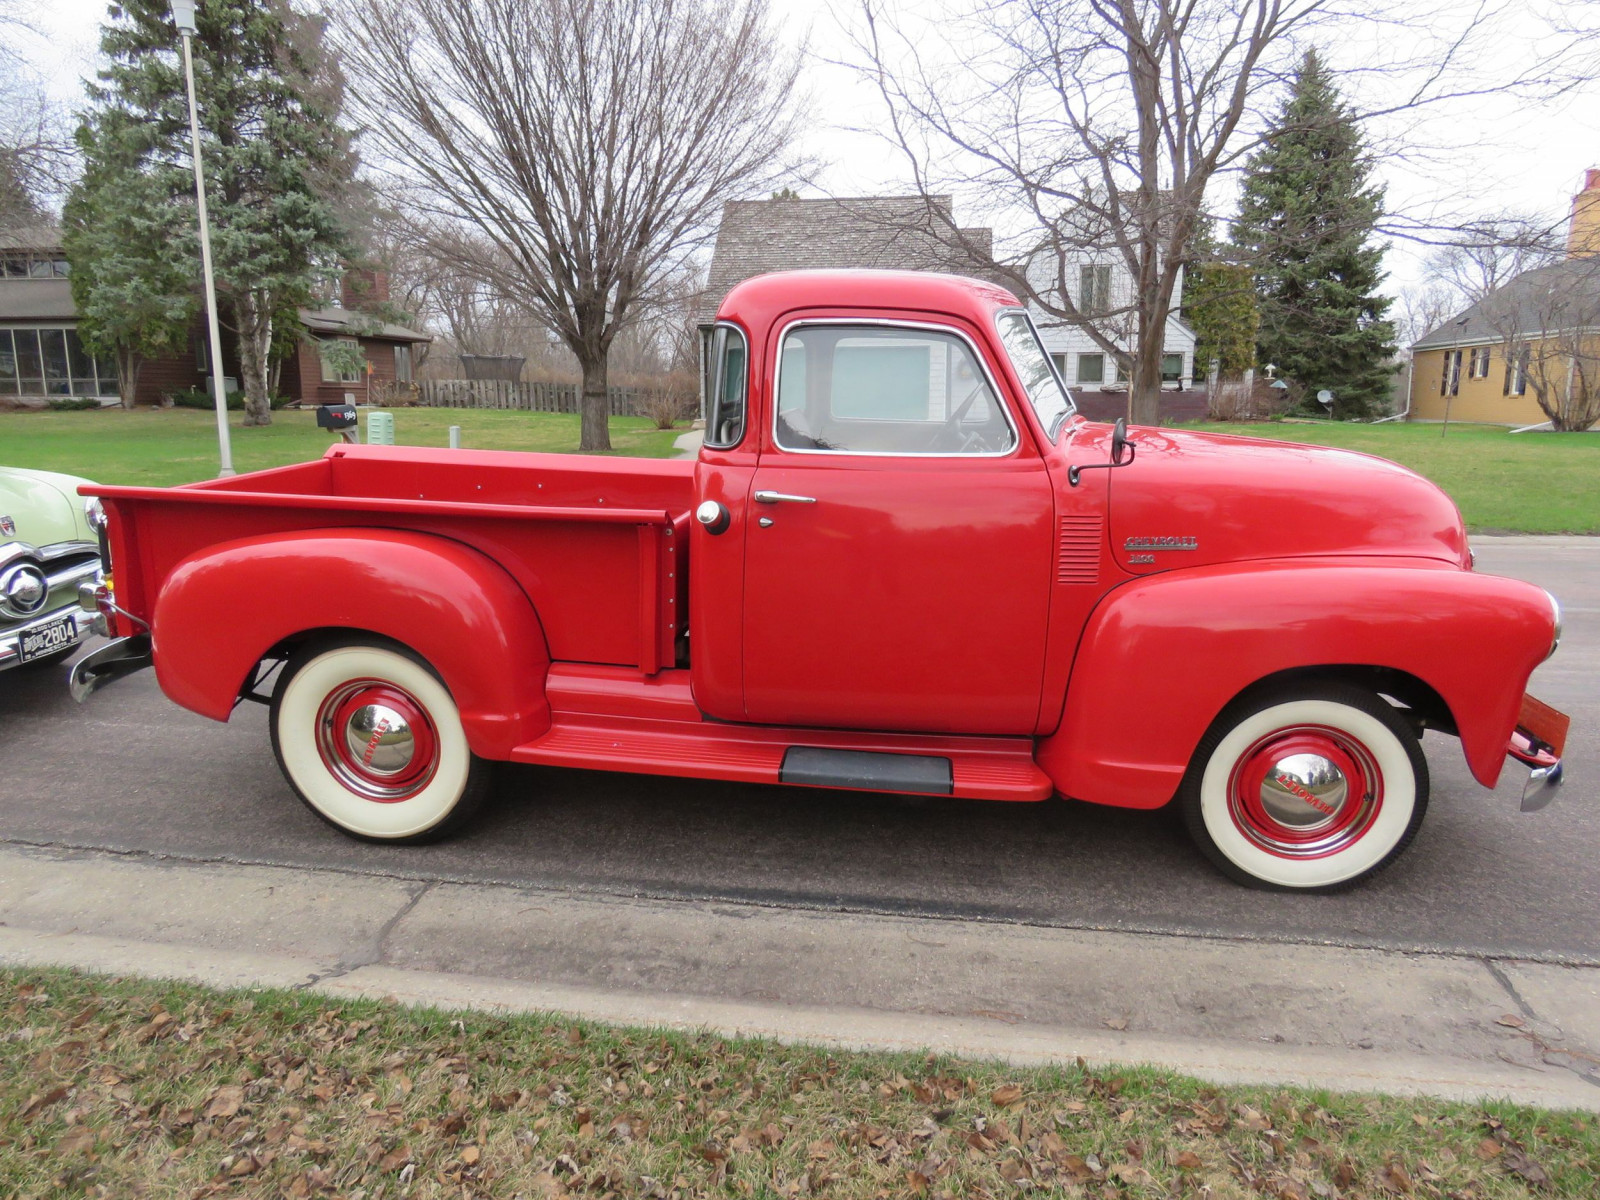 1950 Chevrolet 3100 5 window Pickup - Image 4